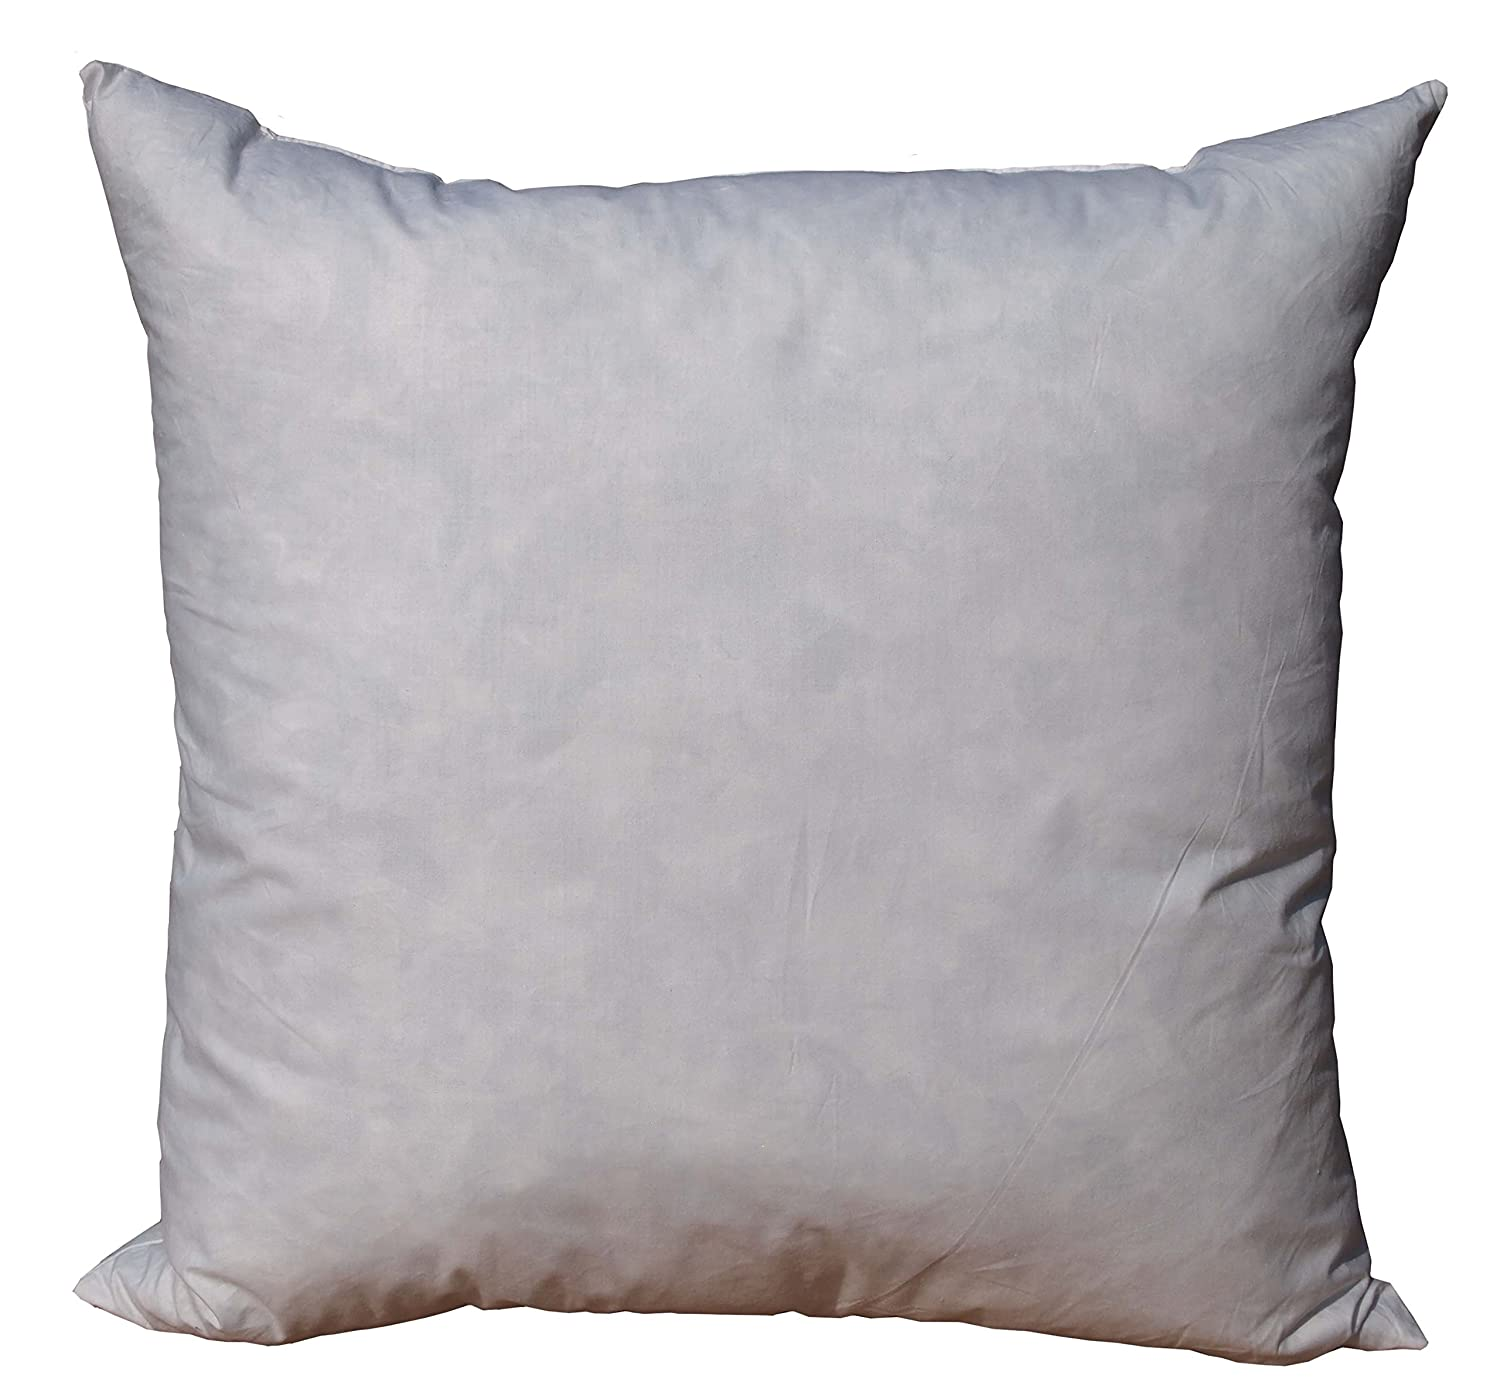 Pillowflex 95% Feather by 5% Down Pillow Form Insert Stuffers for Throw sham Covers and Cushions (28 Inch by 28 Inch)